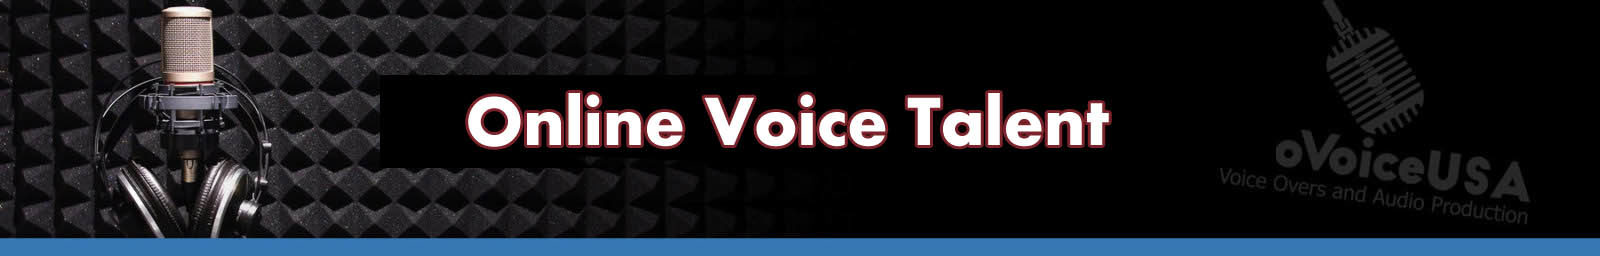 Online Voice Talent Header